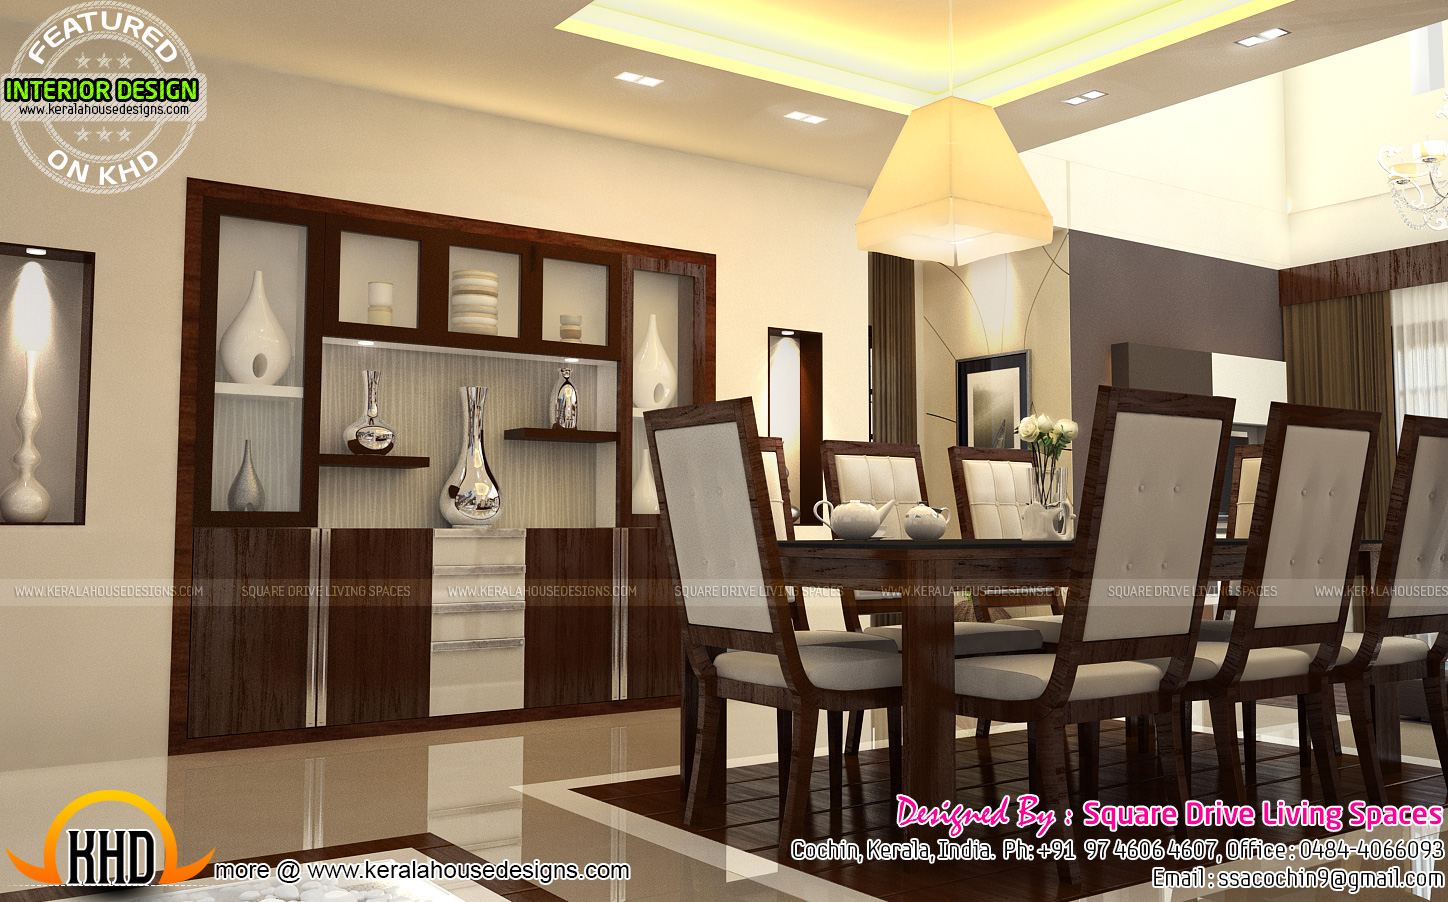 Interior designs of master bedroom living kitchen and for Interior design of kitchen room in india